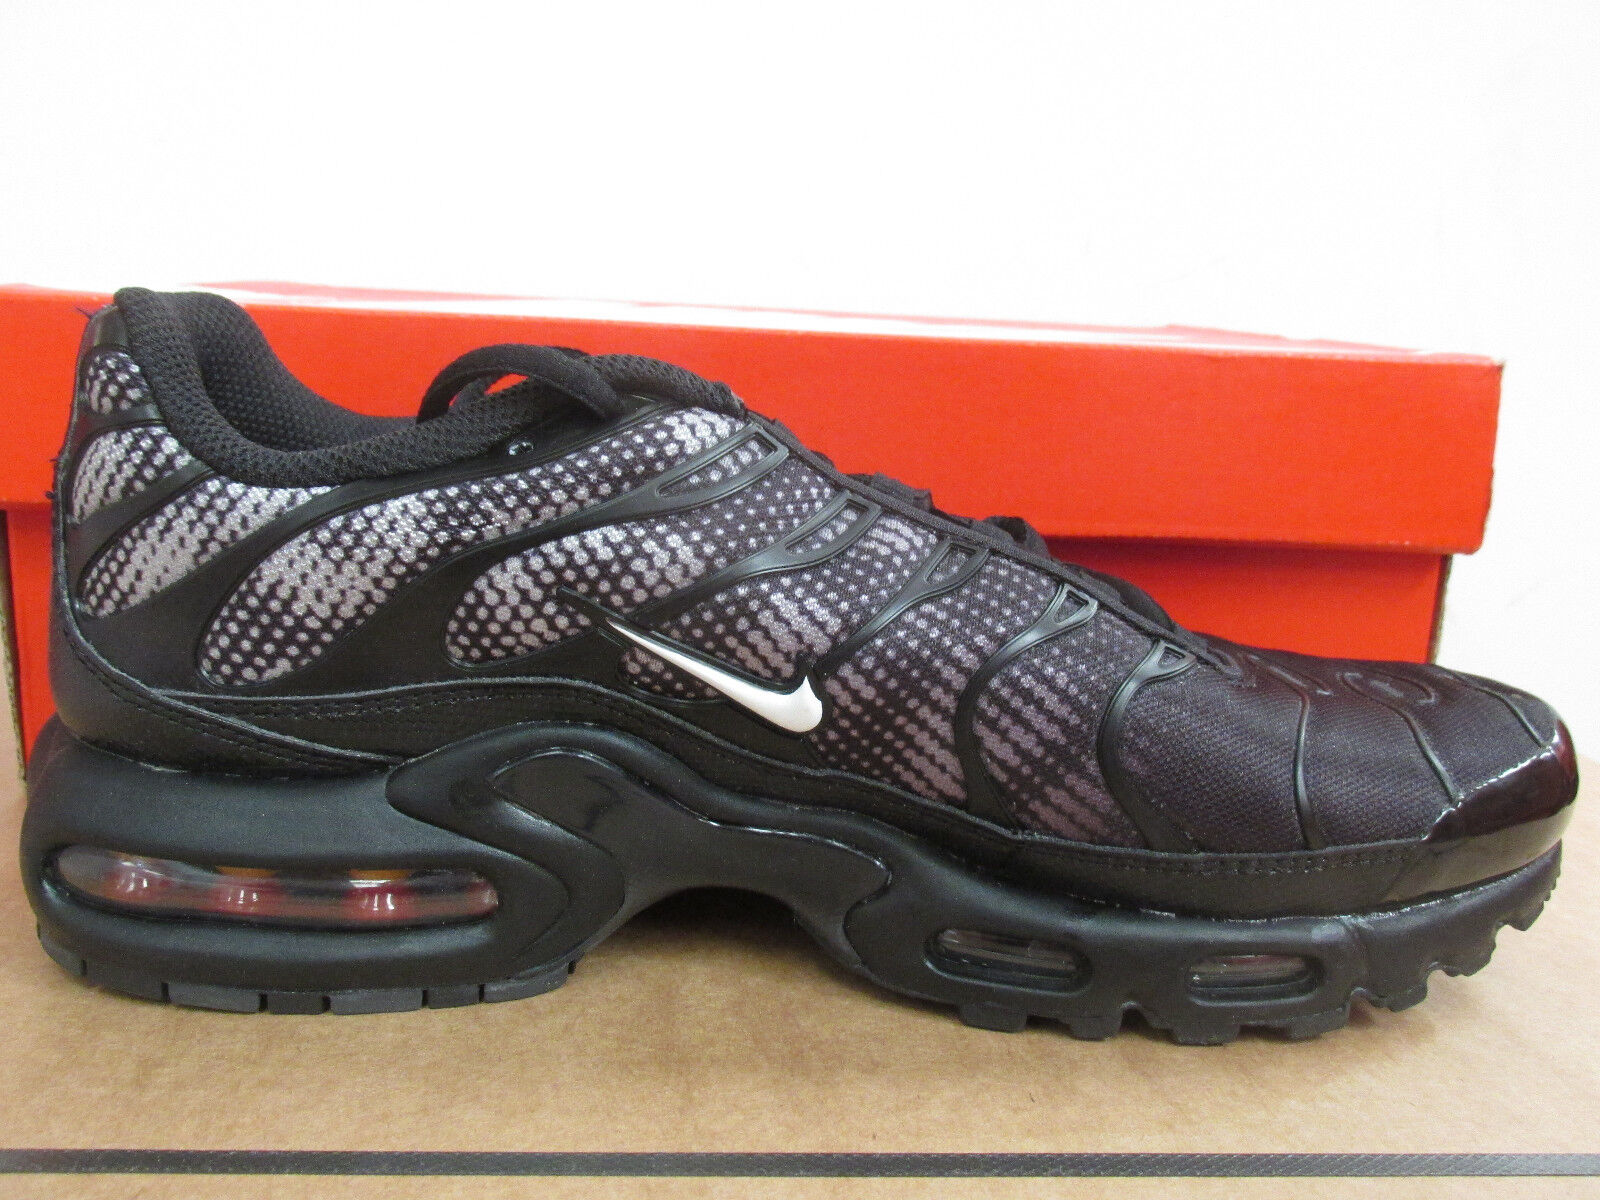 separation shoes 44a01 21828 ... Nike Nike Nike Air Max Plus txt Hombre running Trainers 647315 011  Zapatillas Zapatos de marca ...